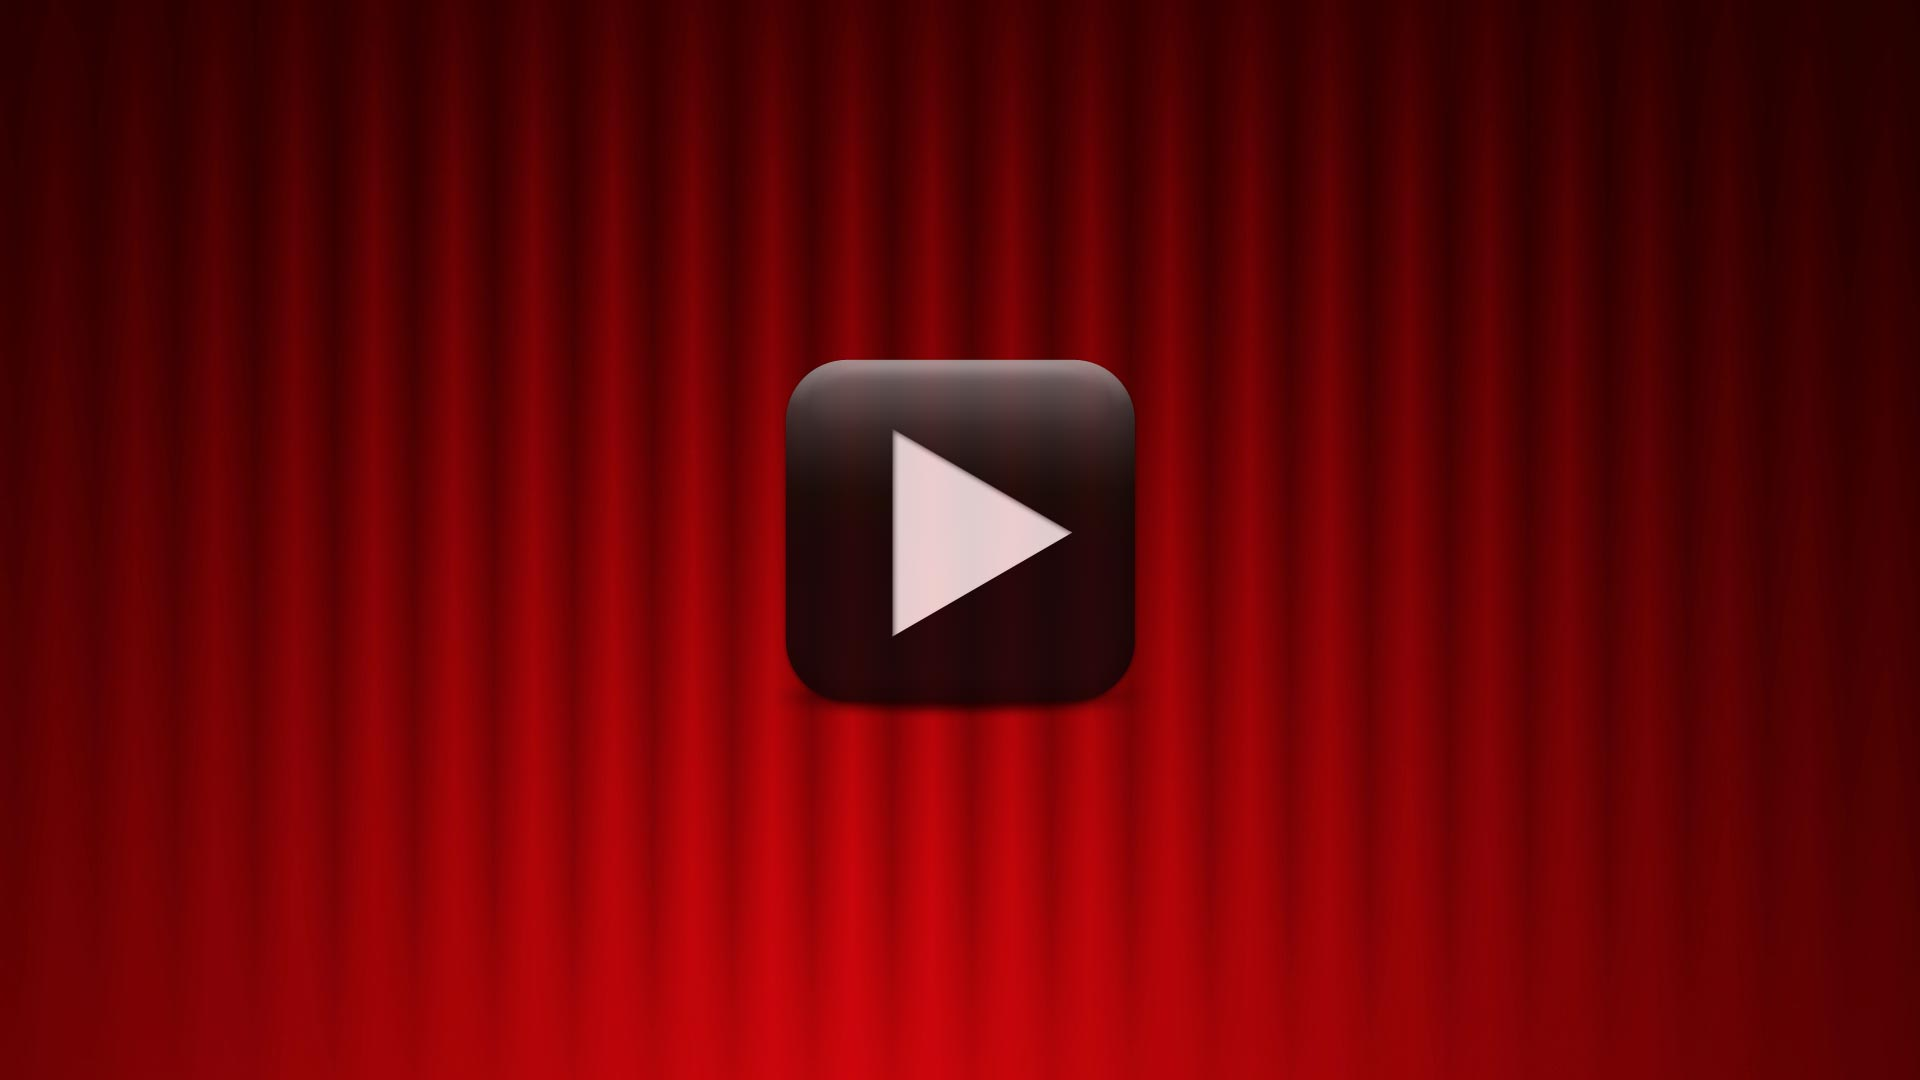 Free Ripples Curtains Animated Video Backgrounds